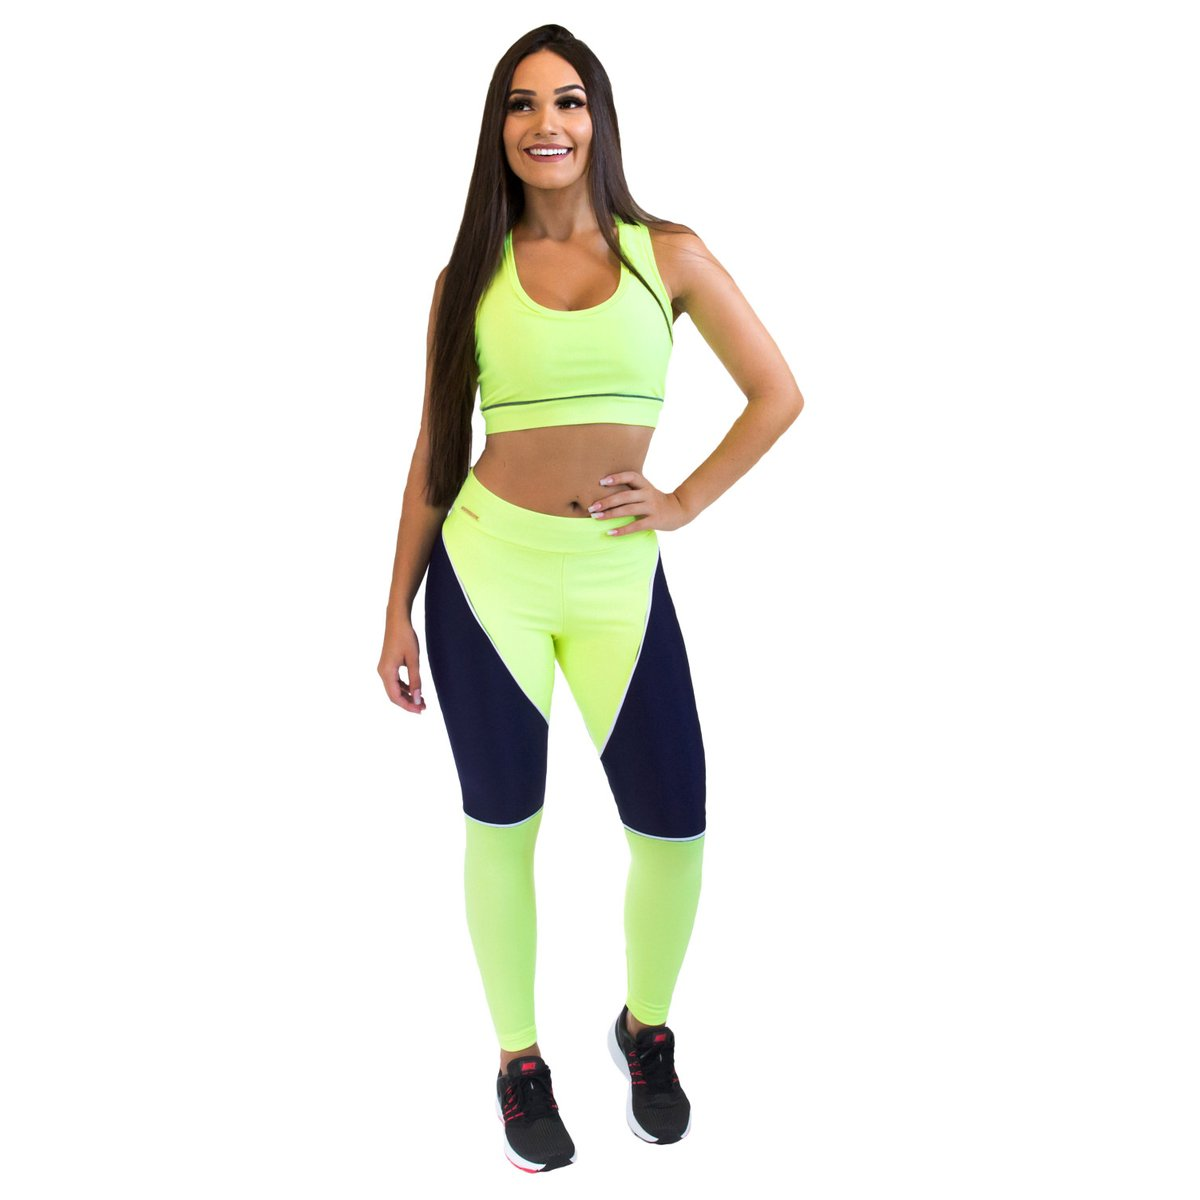 Feminina Fit Girl Power Verde Legging e Training Calça Azul Brasil AYqwB